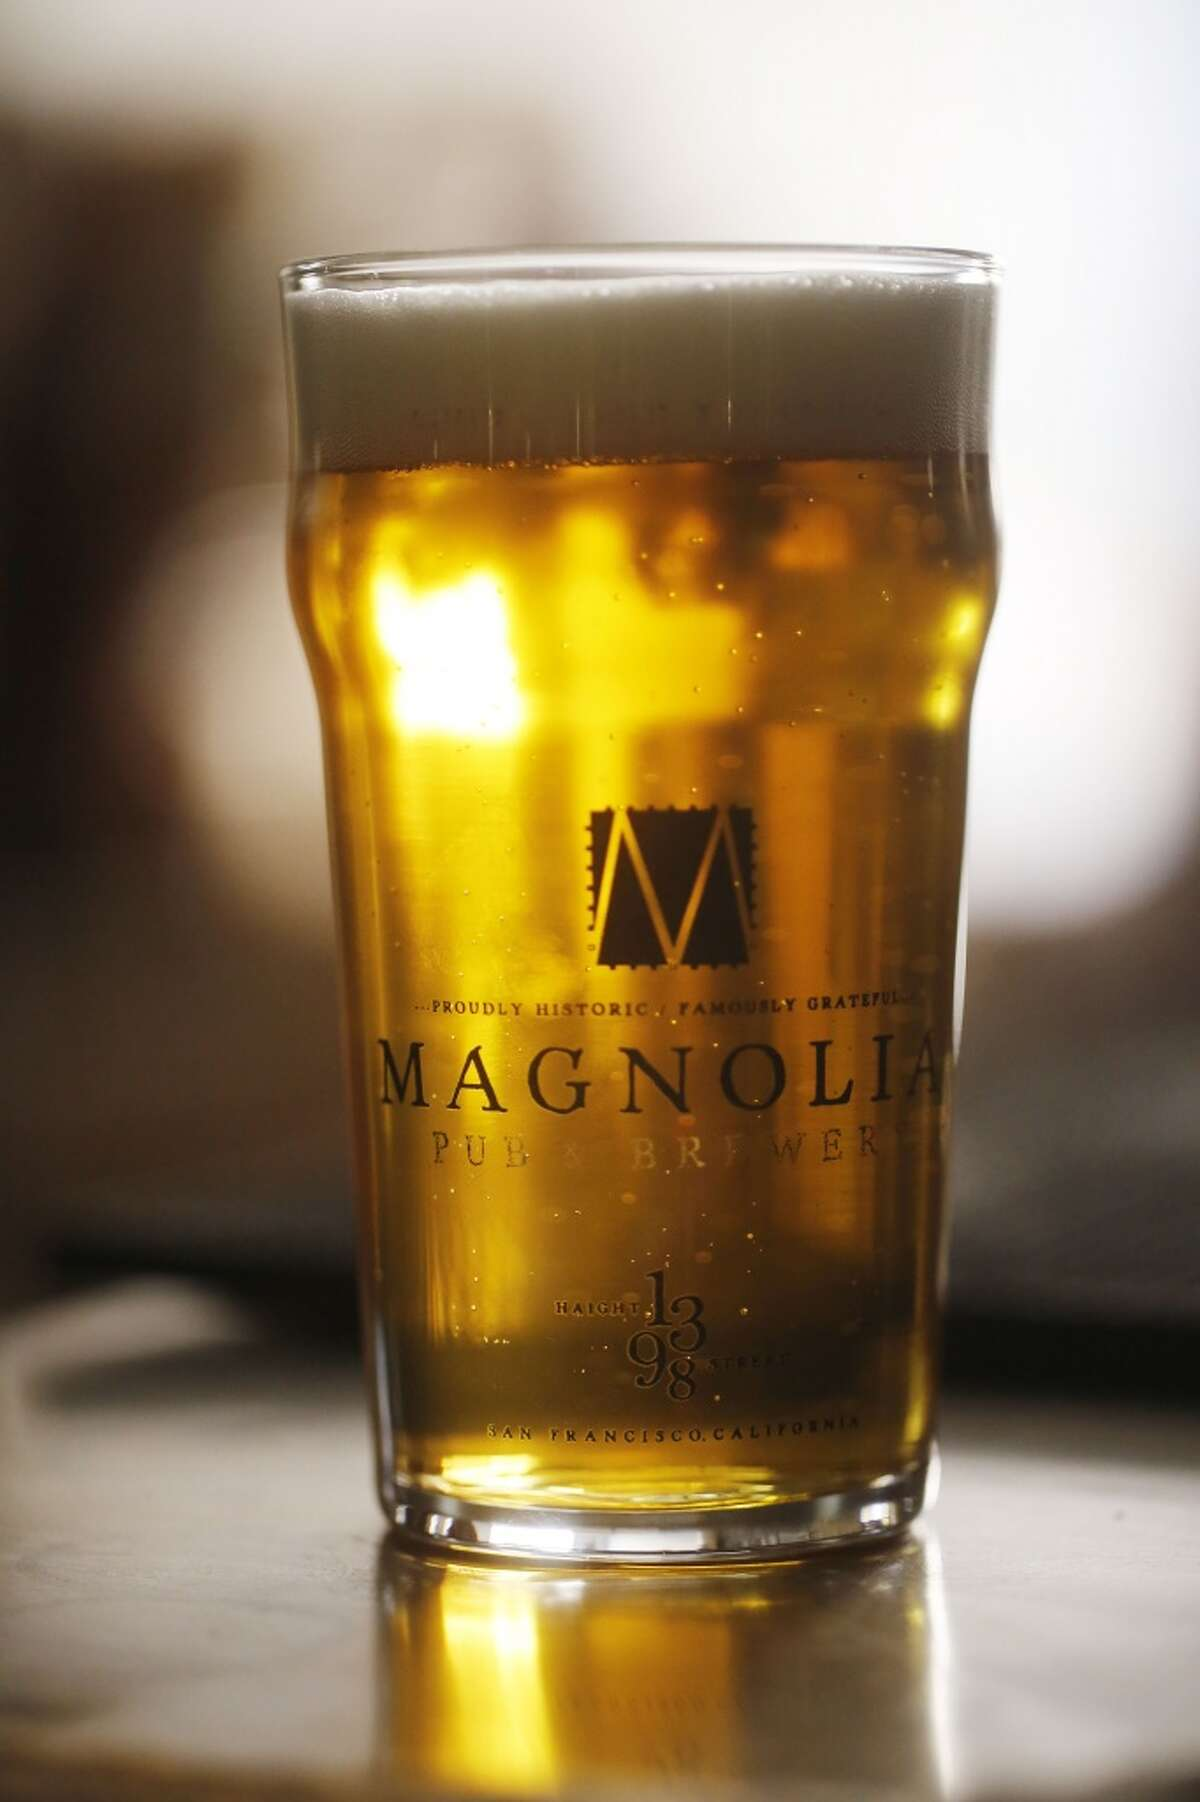 Magnolia Brewery and Pub: This popular Haight Street pub has been brewing beers like Proving Ground IPA, Cole Porter and Blue Bell Bitter for over 16 years. Magnolia also serves food, like housemade sausages and fish and chips. 1398 Haight St., S.F., (415) 864-7468, www.magnoliapub.com.